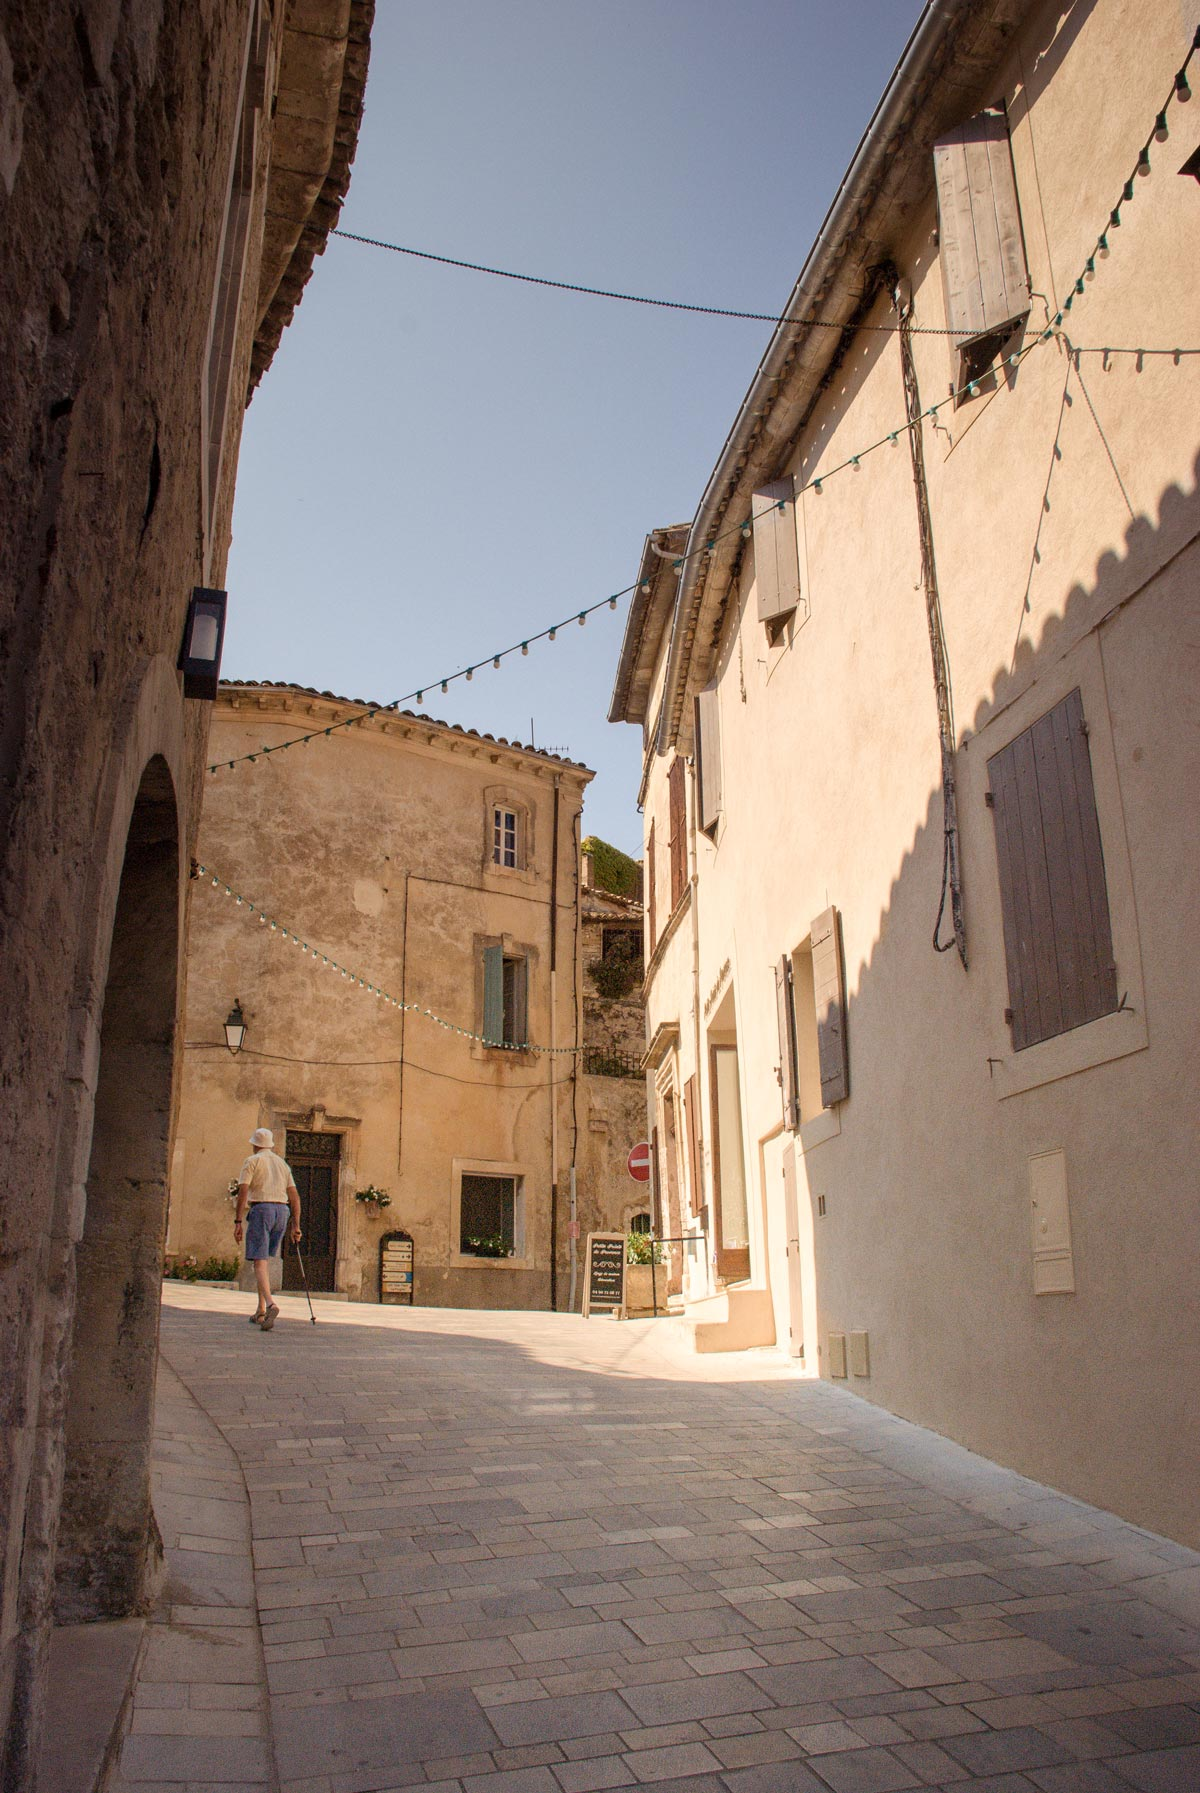 Provence-Villages-South-of-France.-Provence-Luberon.-Menerbes-roads